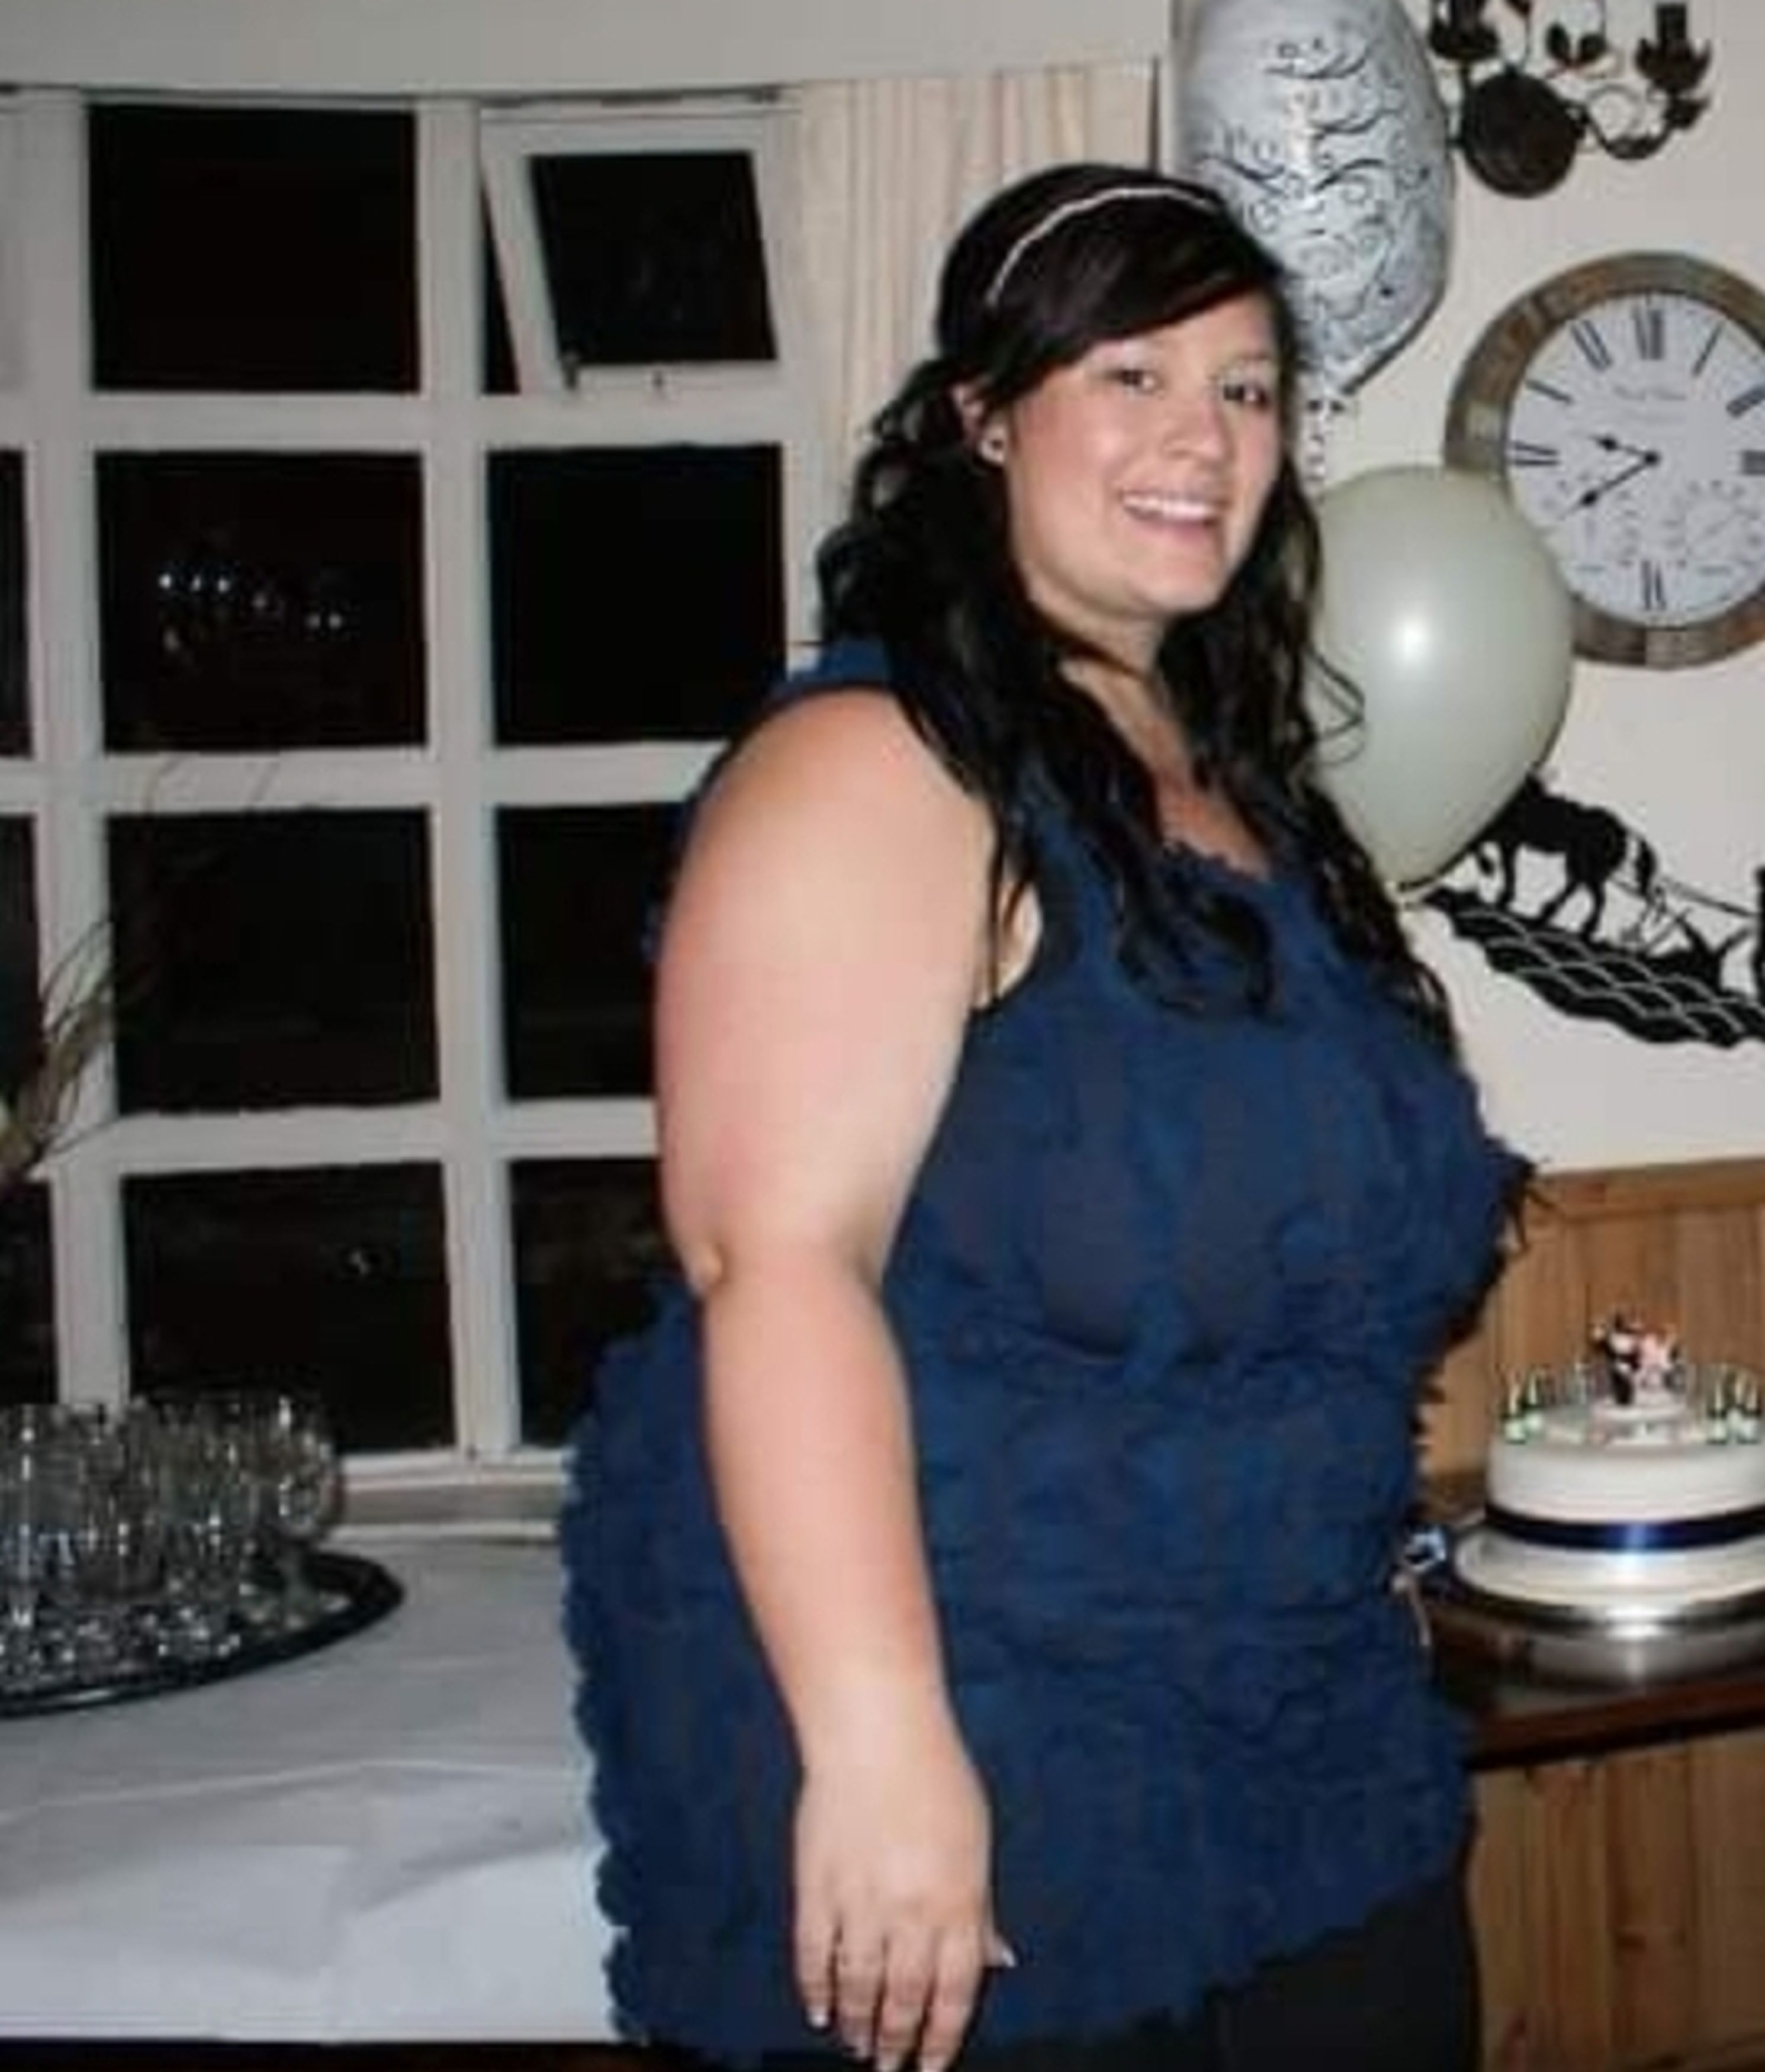 Mum loses weight after guy threw burger at her